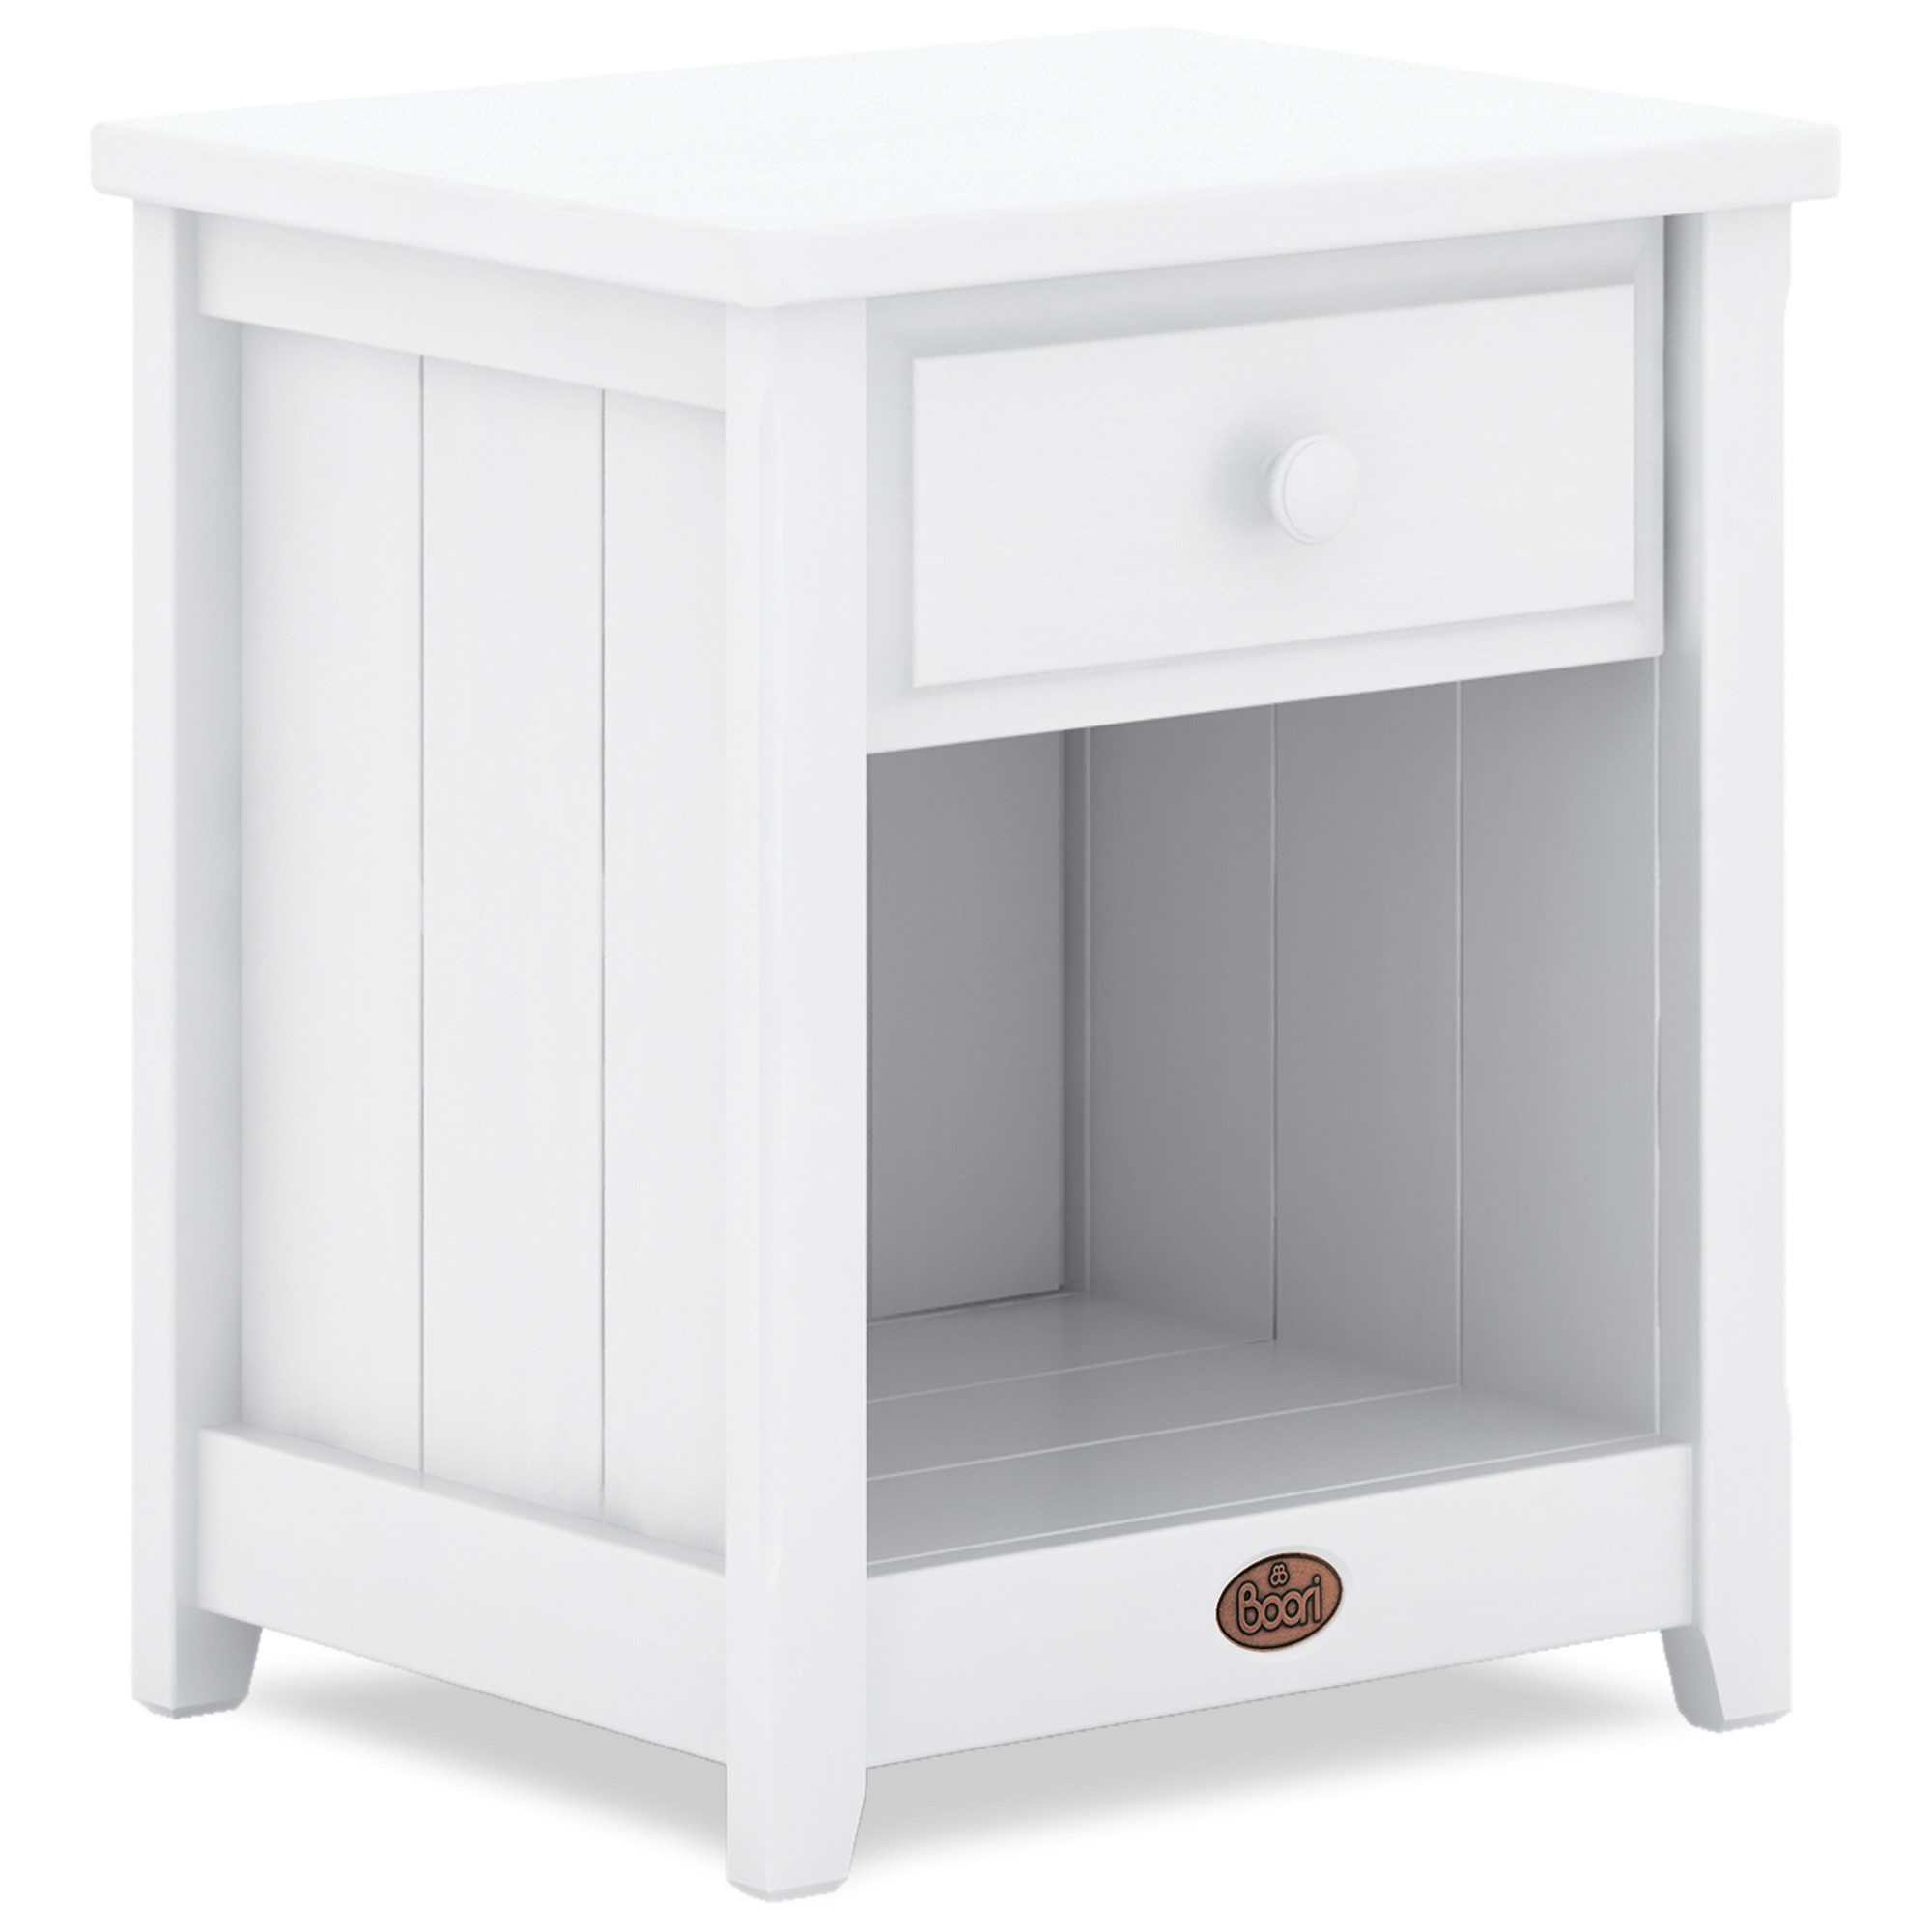 Boori Universal Wooden Bedside Table, Barley White